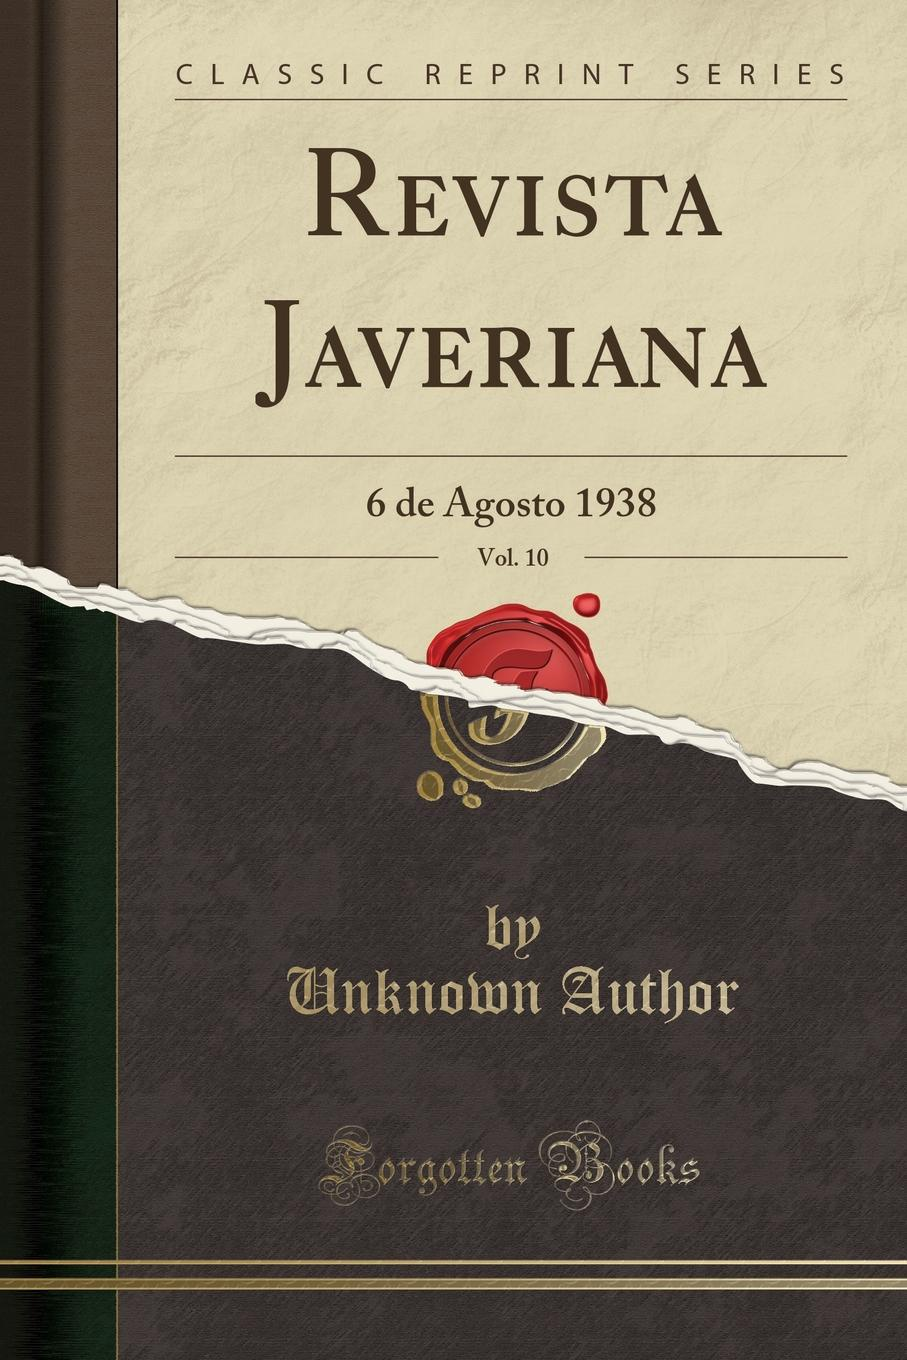 купить Unknown Author Revista Javeriana, Vol. 10. 6 de Agosto 1938 (Classic Reprint) по цене 1277 рублей